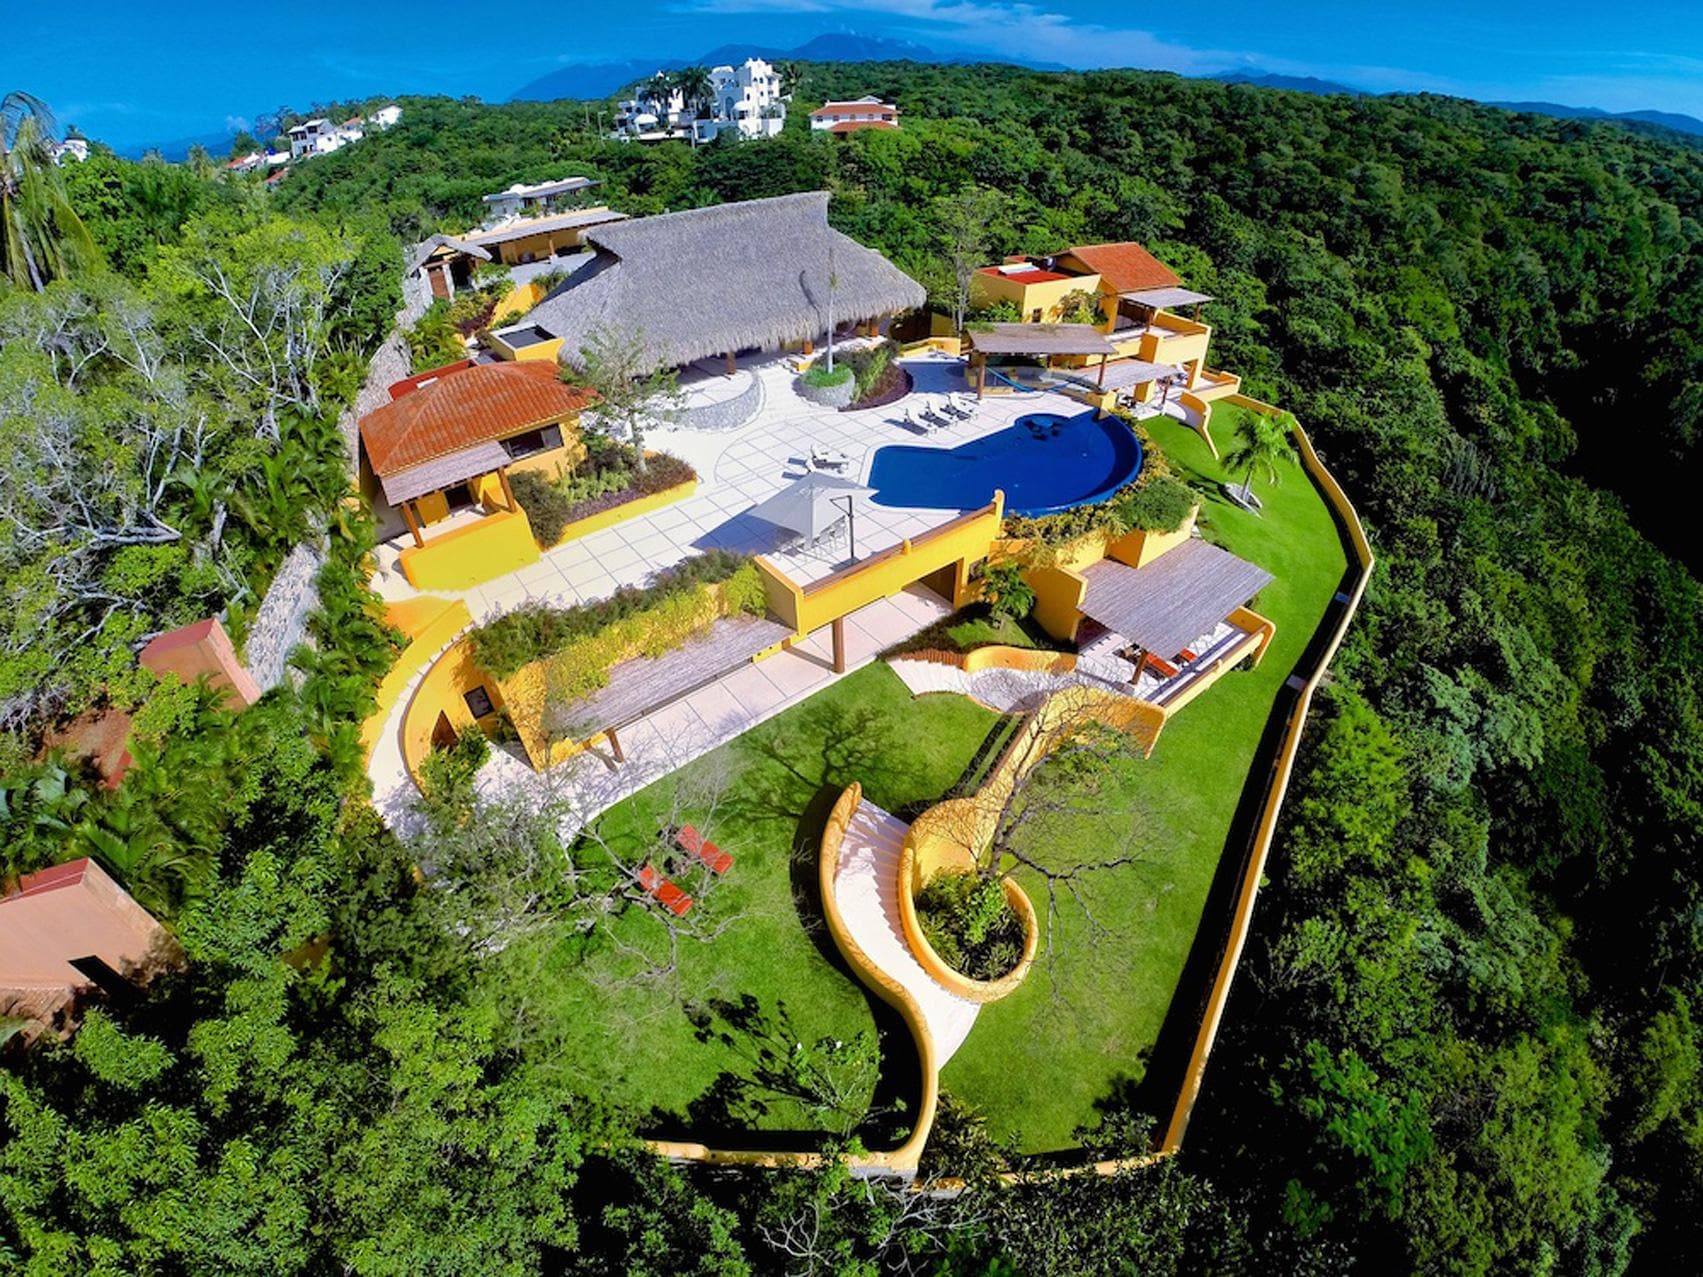 Sprawling Ocean View Estate Featured on Network TV